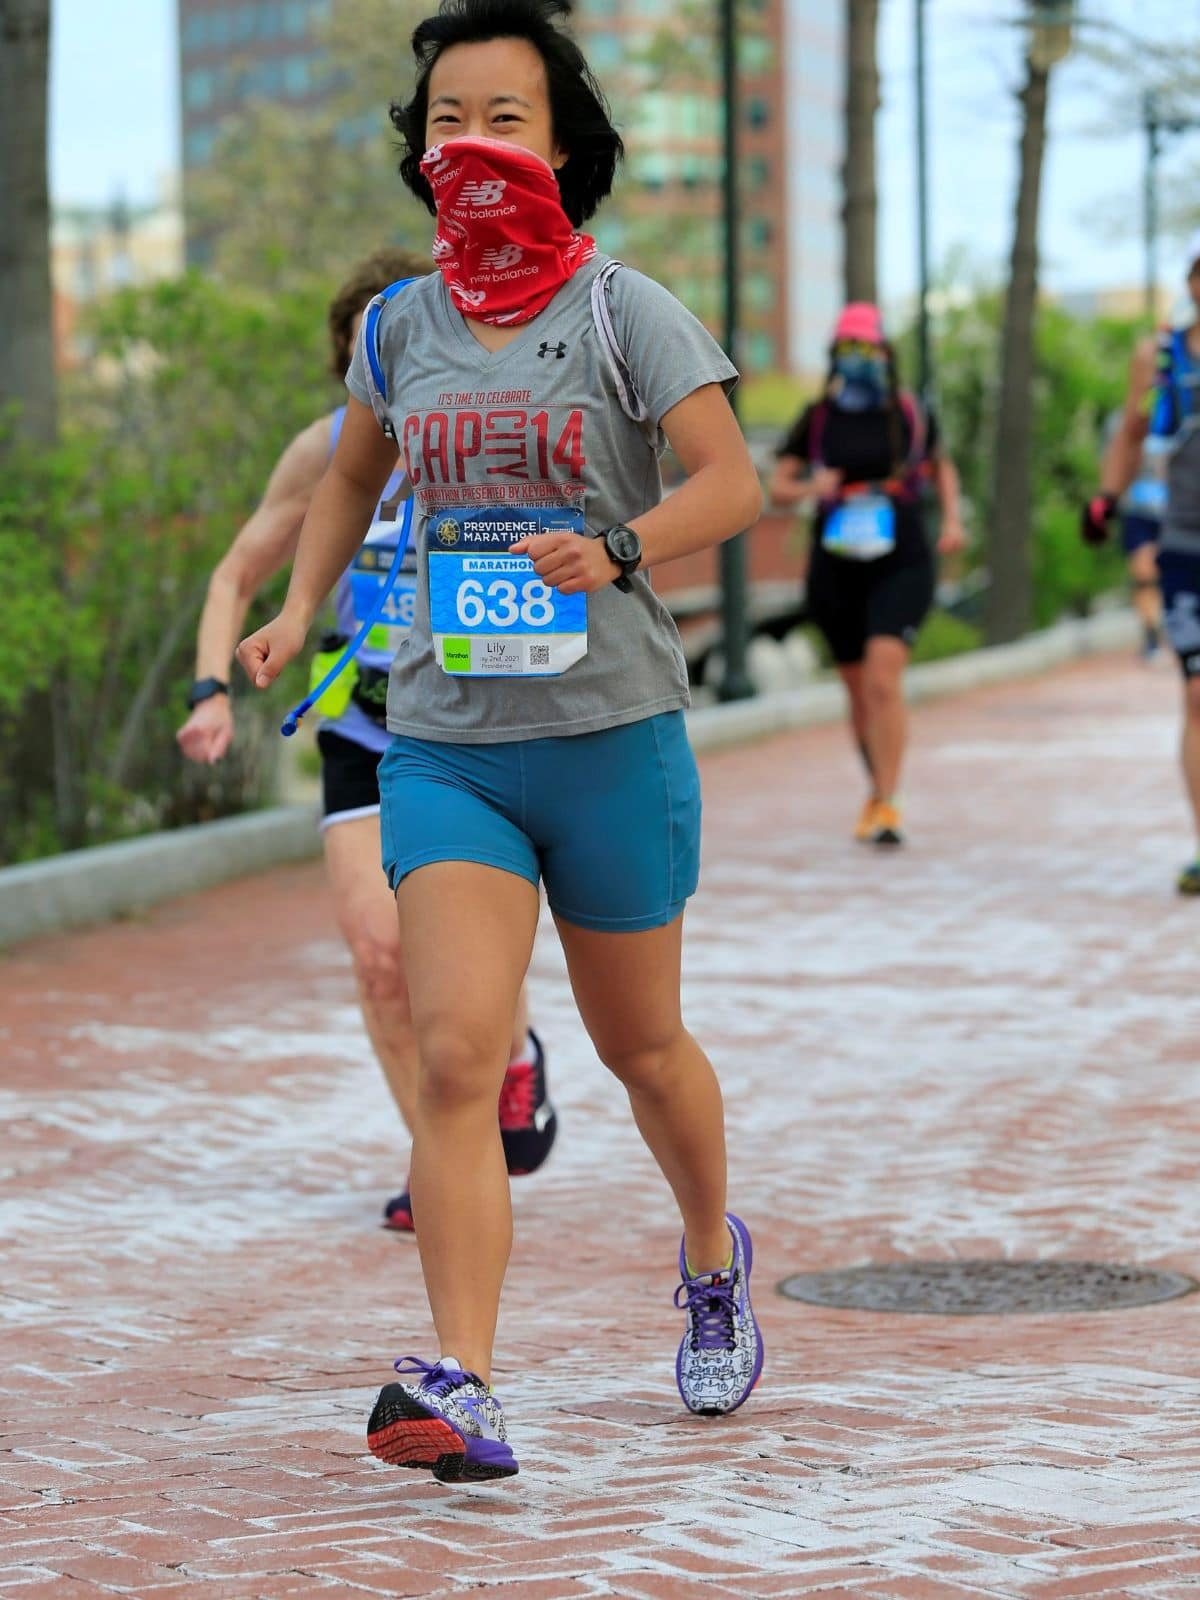 me running the Providence Marathon in the first mile